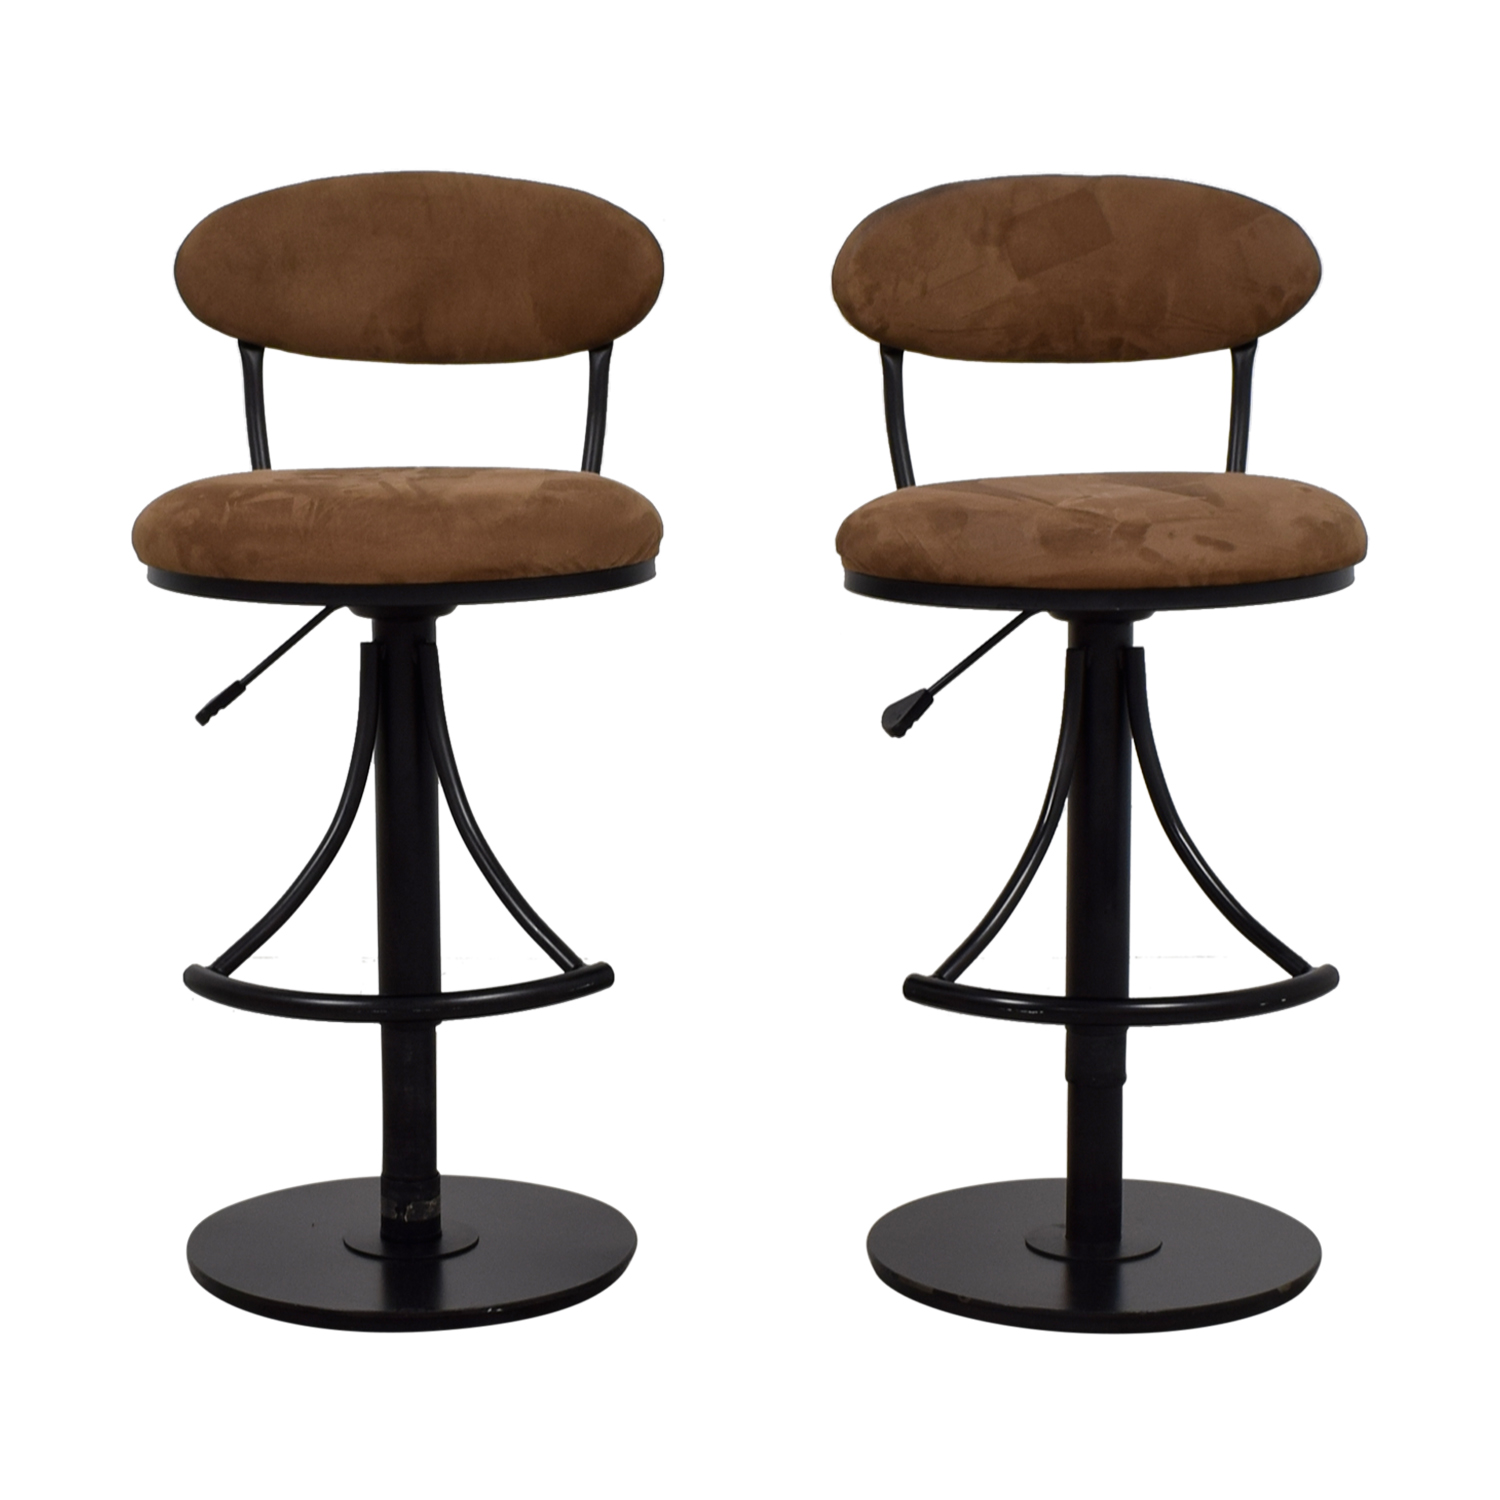 Raymour & Flanigan Raymour & Flanigan Tan Bar Stools nyc